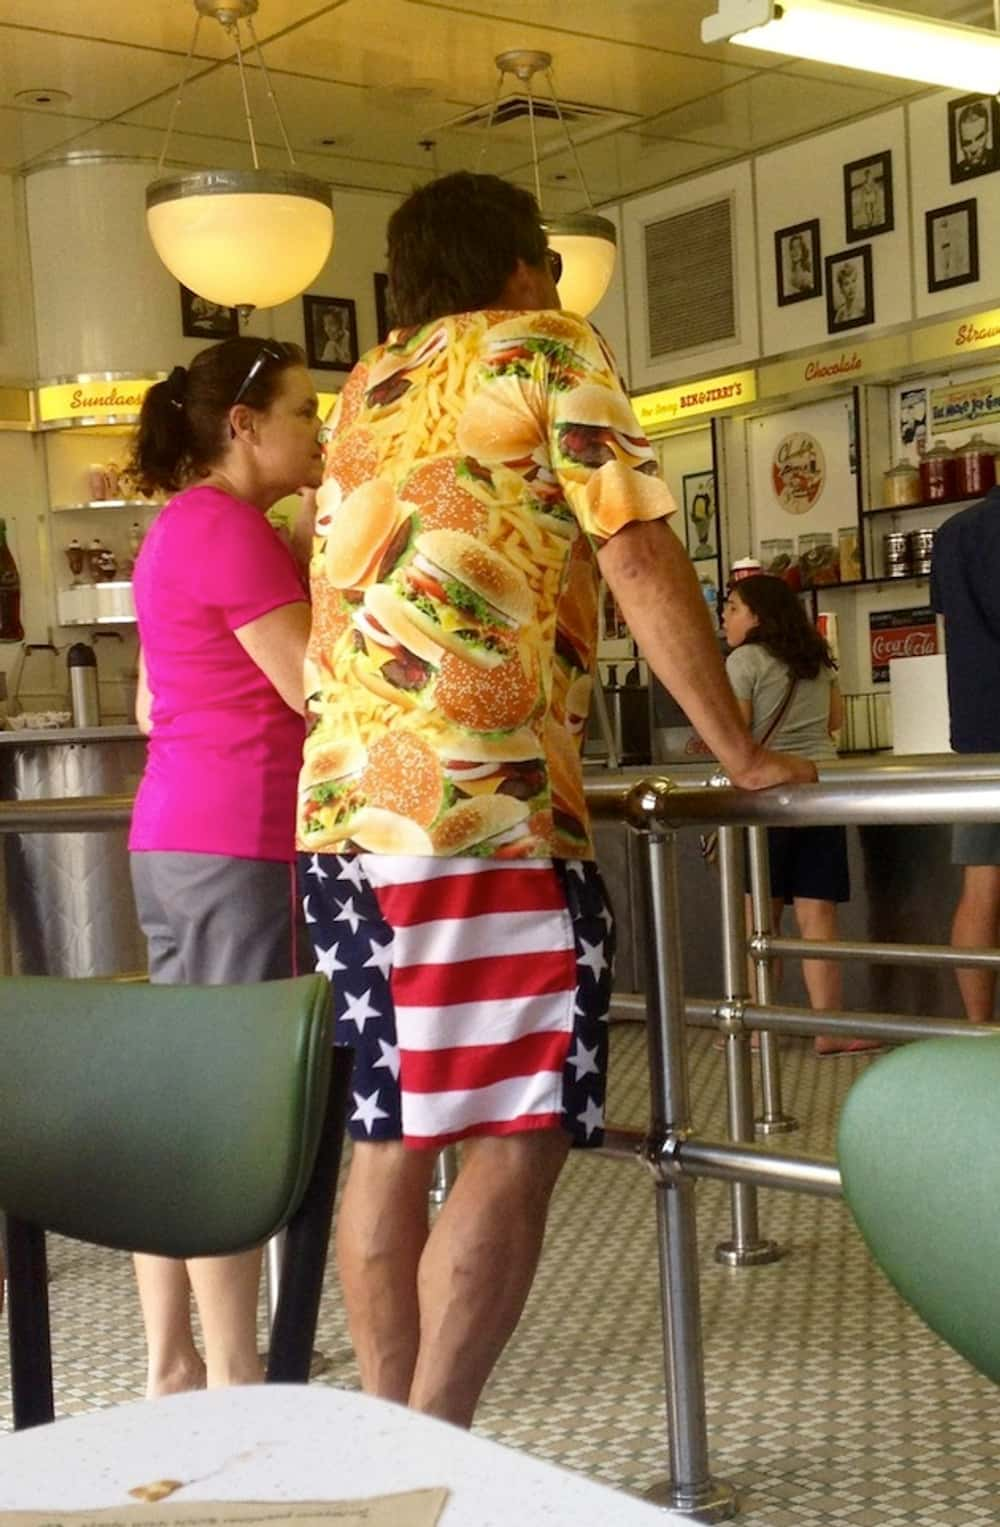 Flags + Burgers=America is listed (or ranked) 1 on the list Terrible 4th of July Outfits That Give America a Bad Name